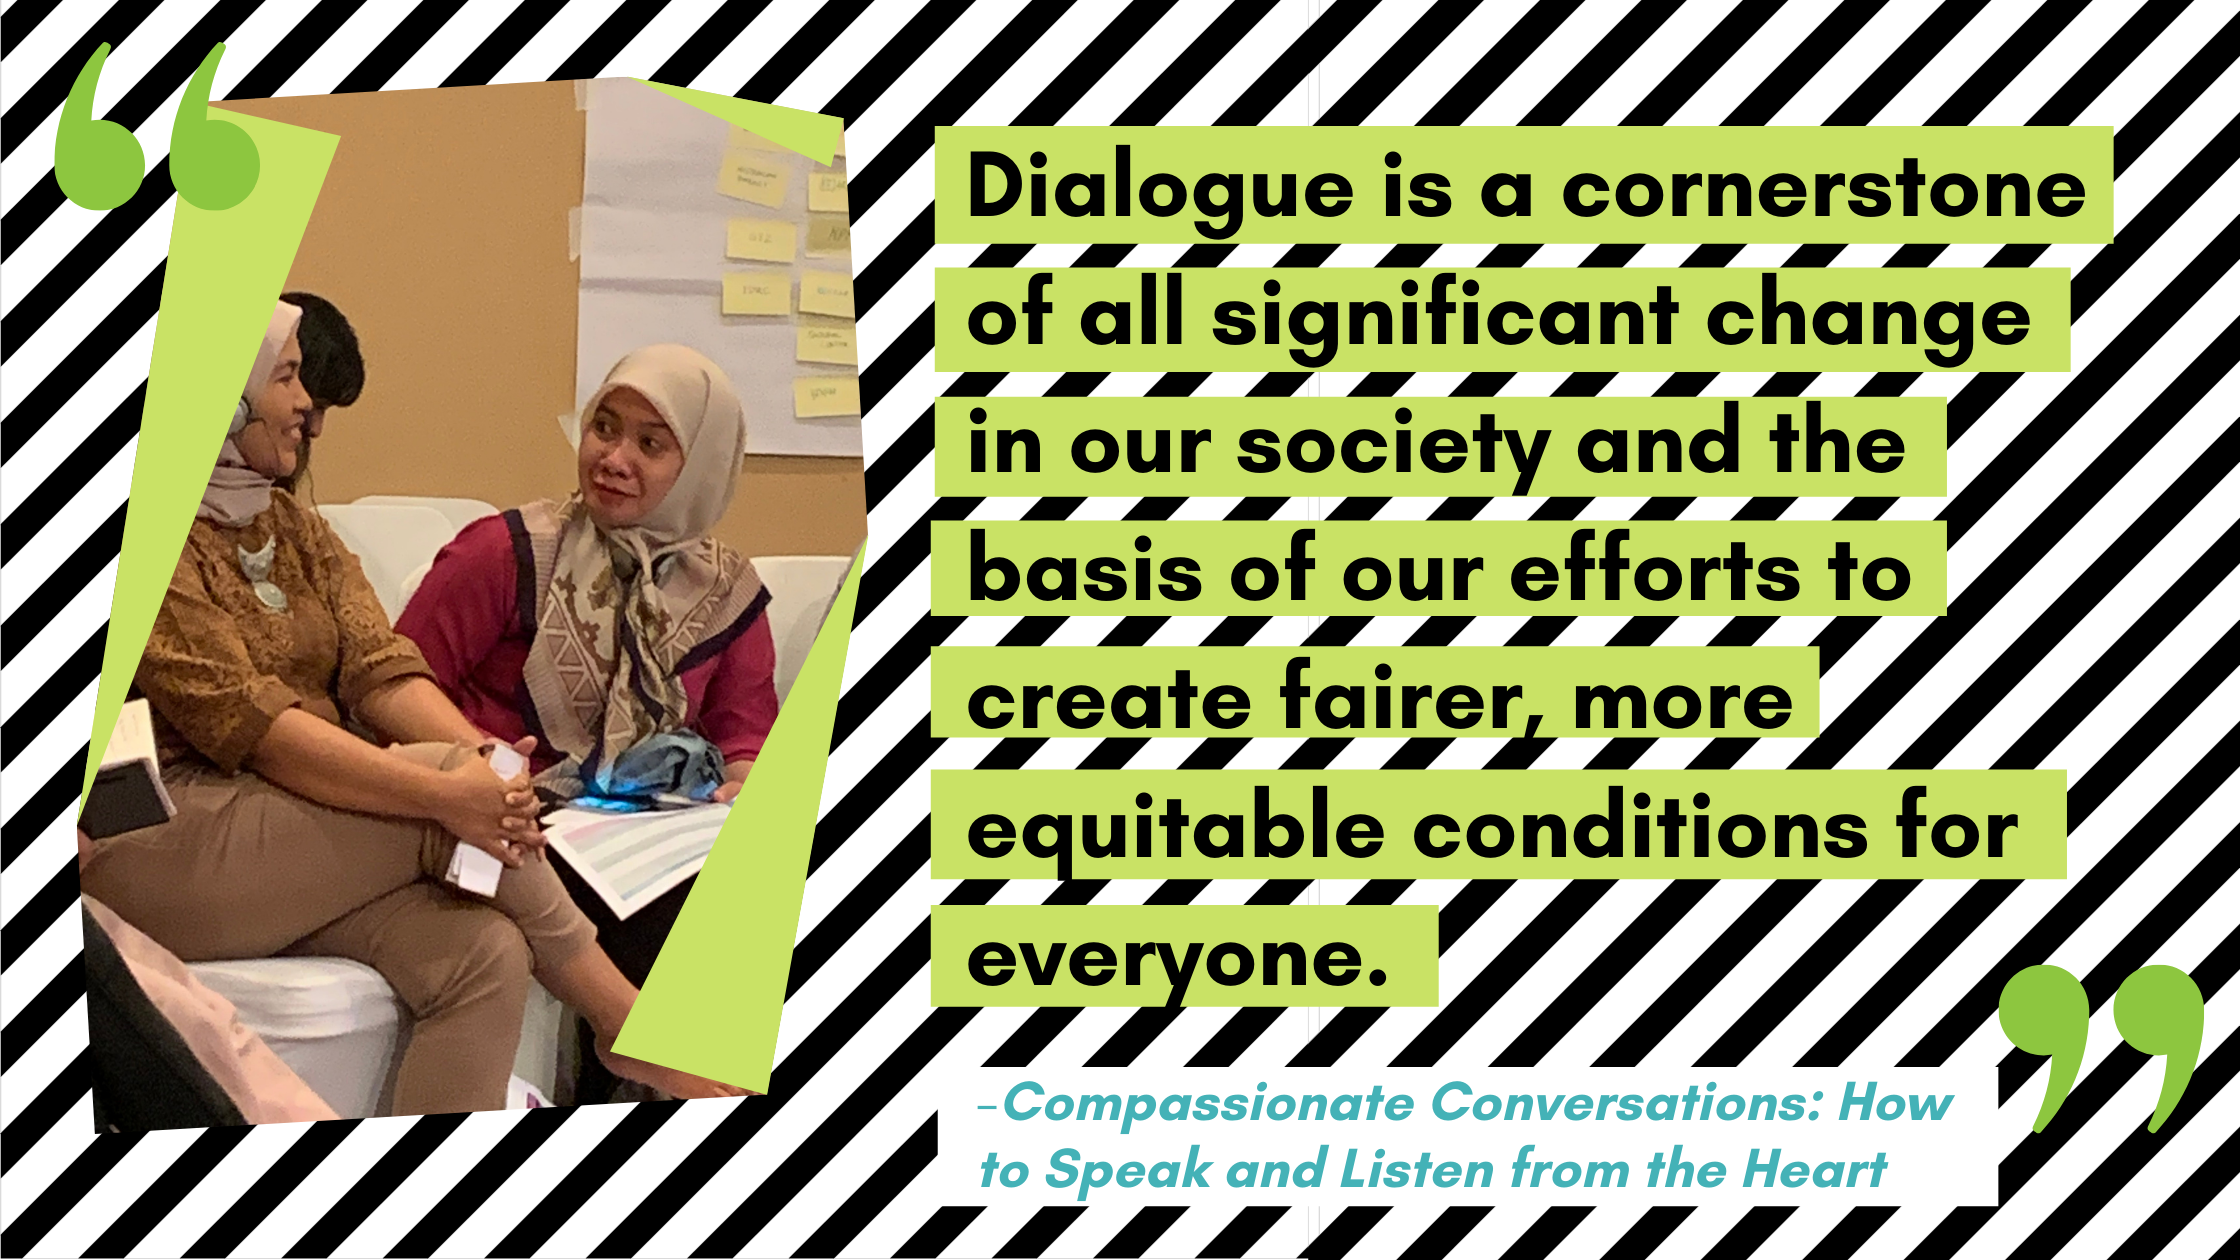 Quote from the book Compassionate Conversations: Dialogue is a cornerstone of all significant change in our society and the basis of our efforts to create fairer, more equitable conditions for everyone.